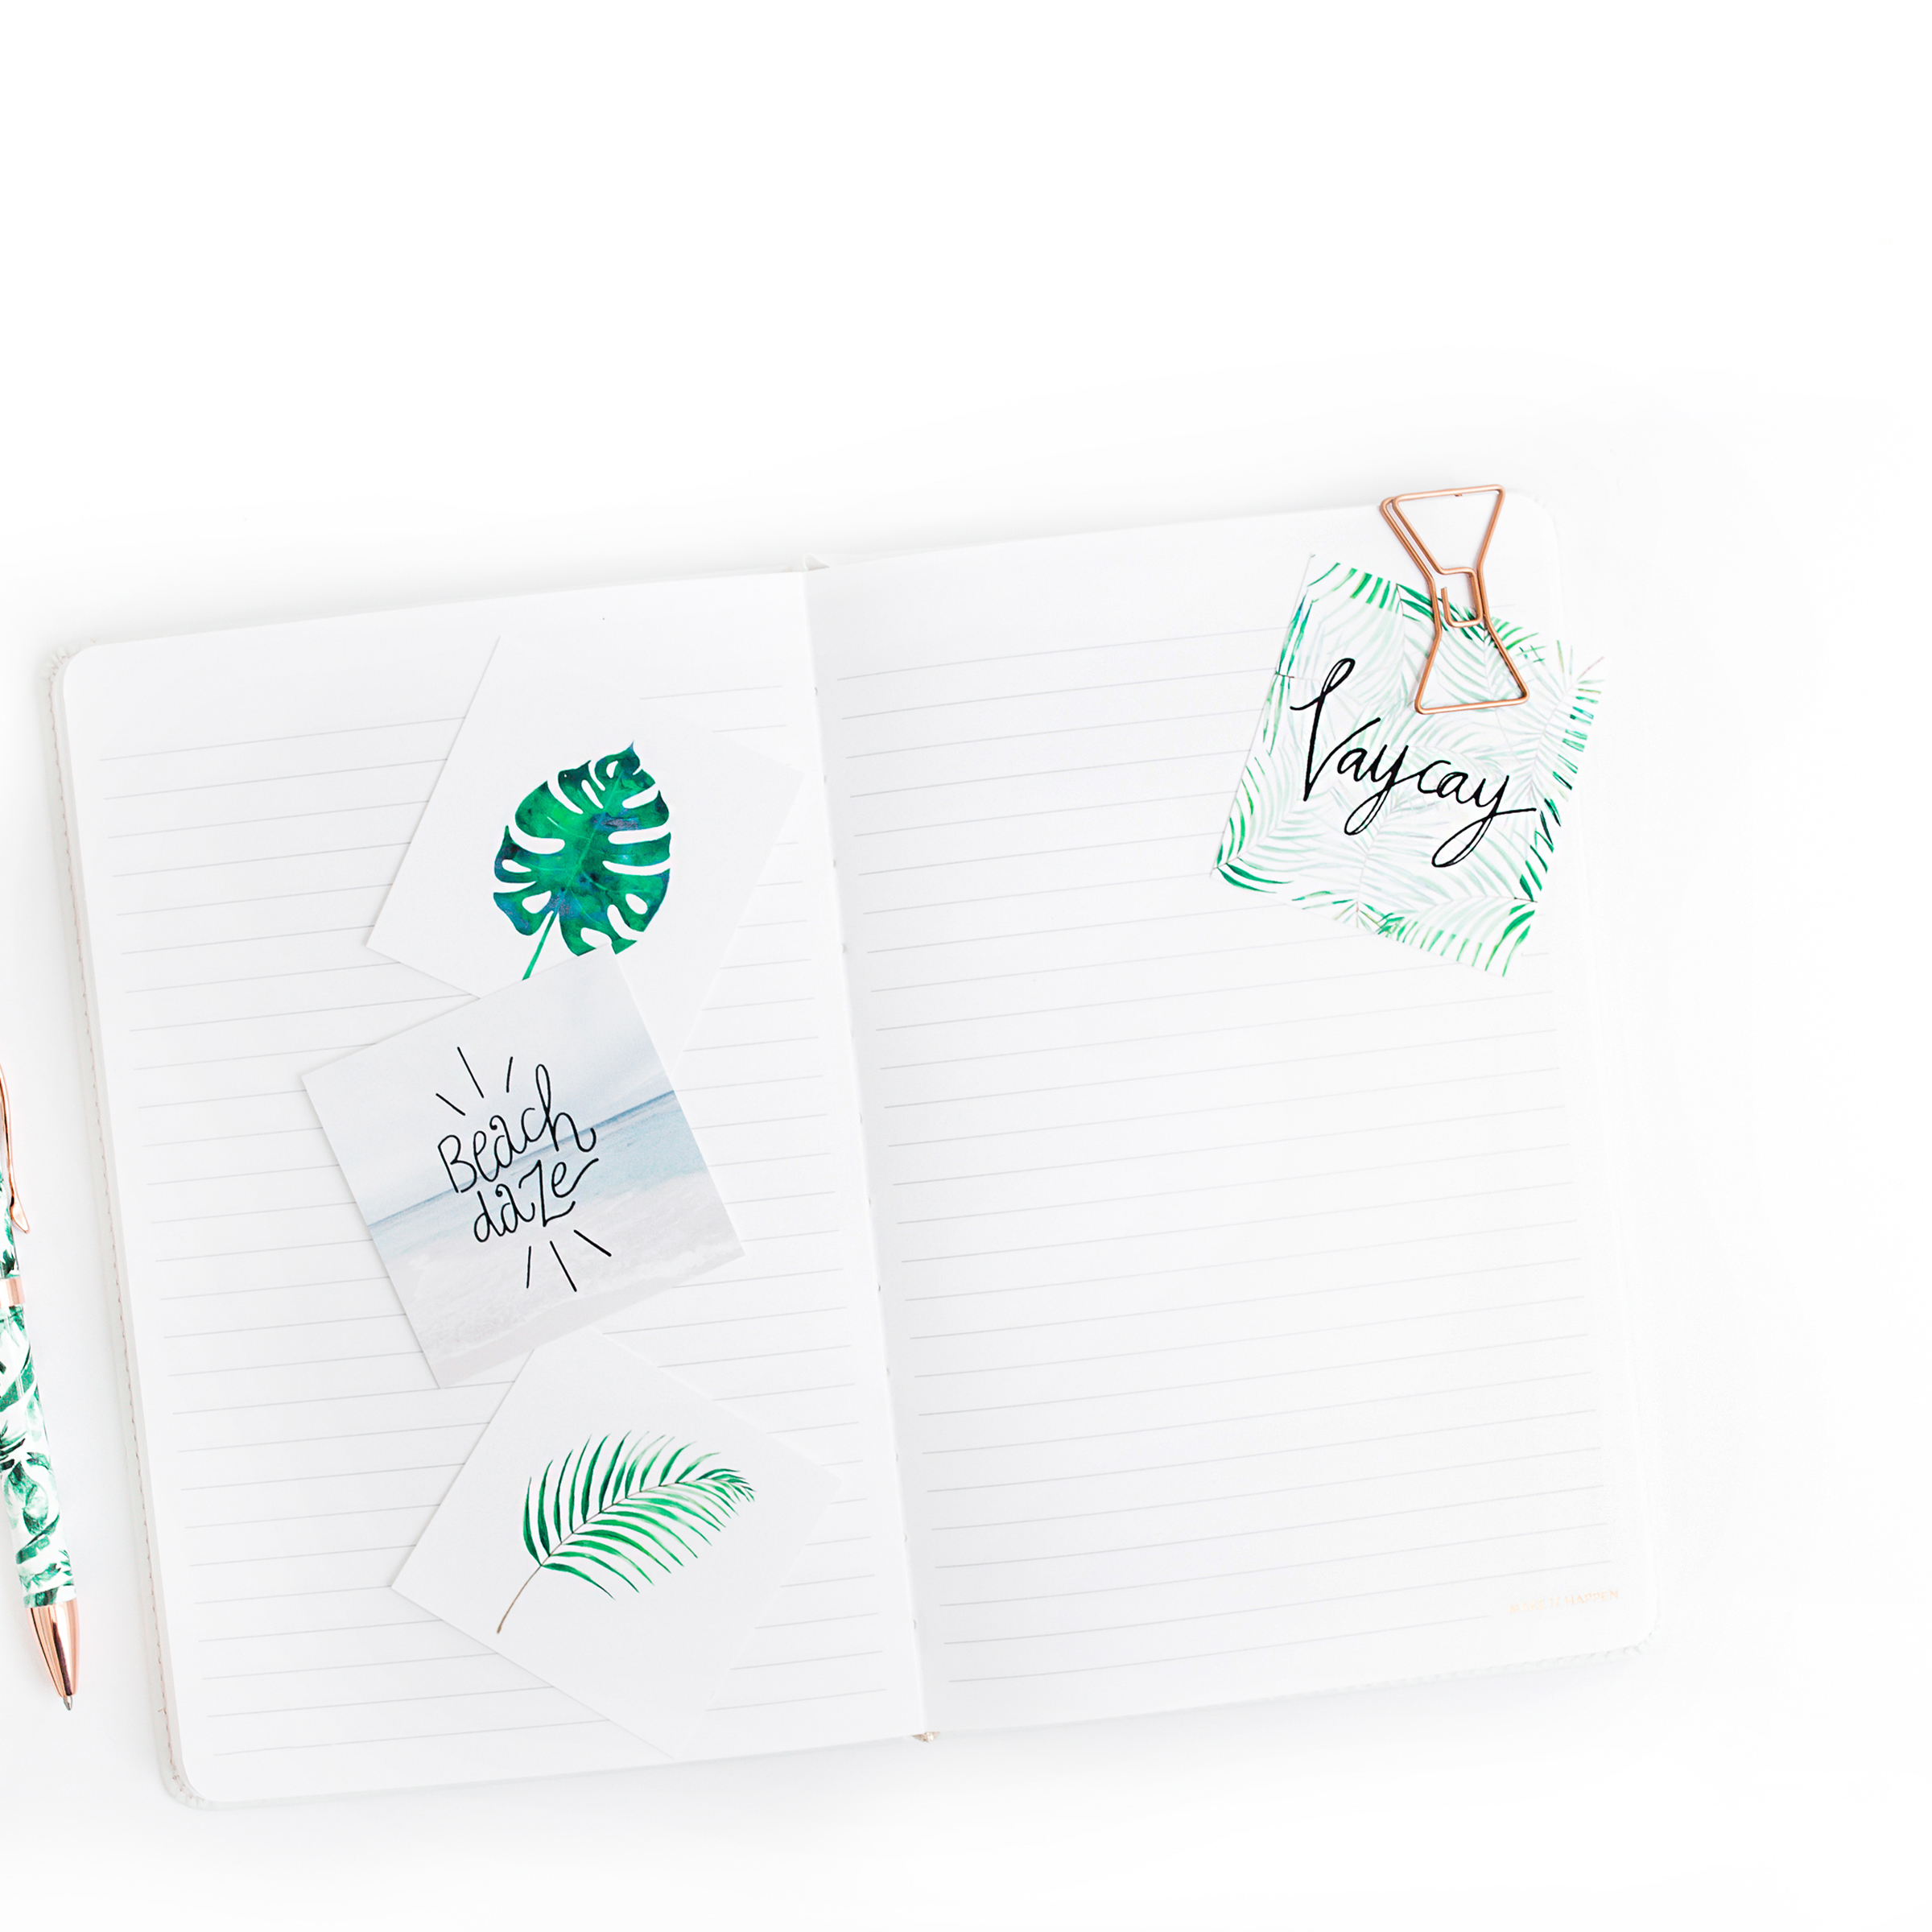 10 Bullet Journal Layout Ideas To Keep Track Of Your Goals